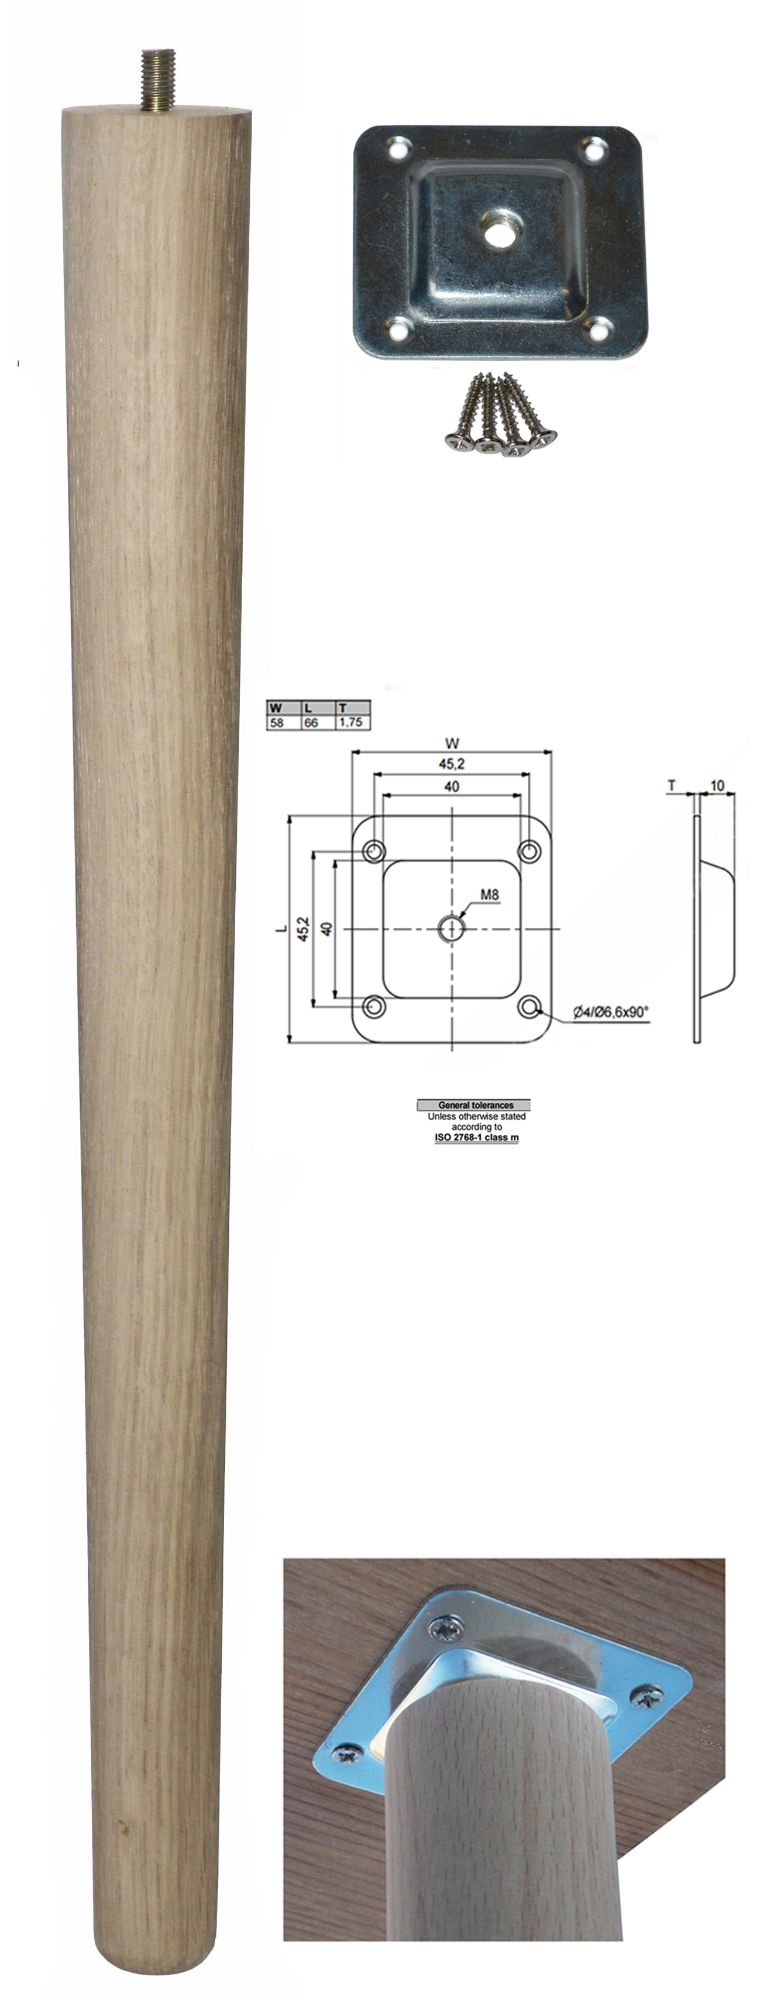 450mm Oak Tapered Leg w/ Level Fixing Plate